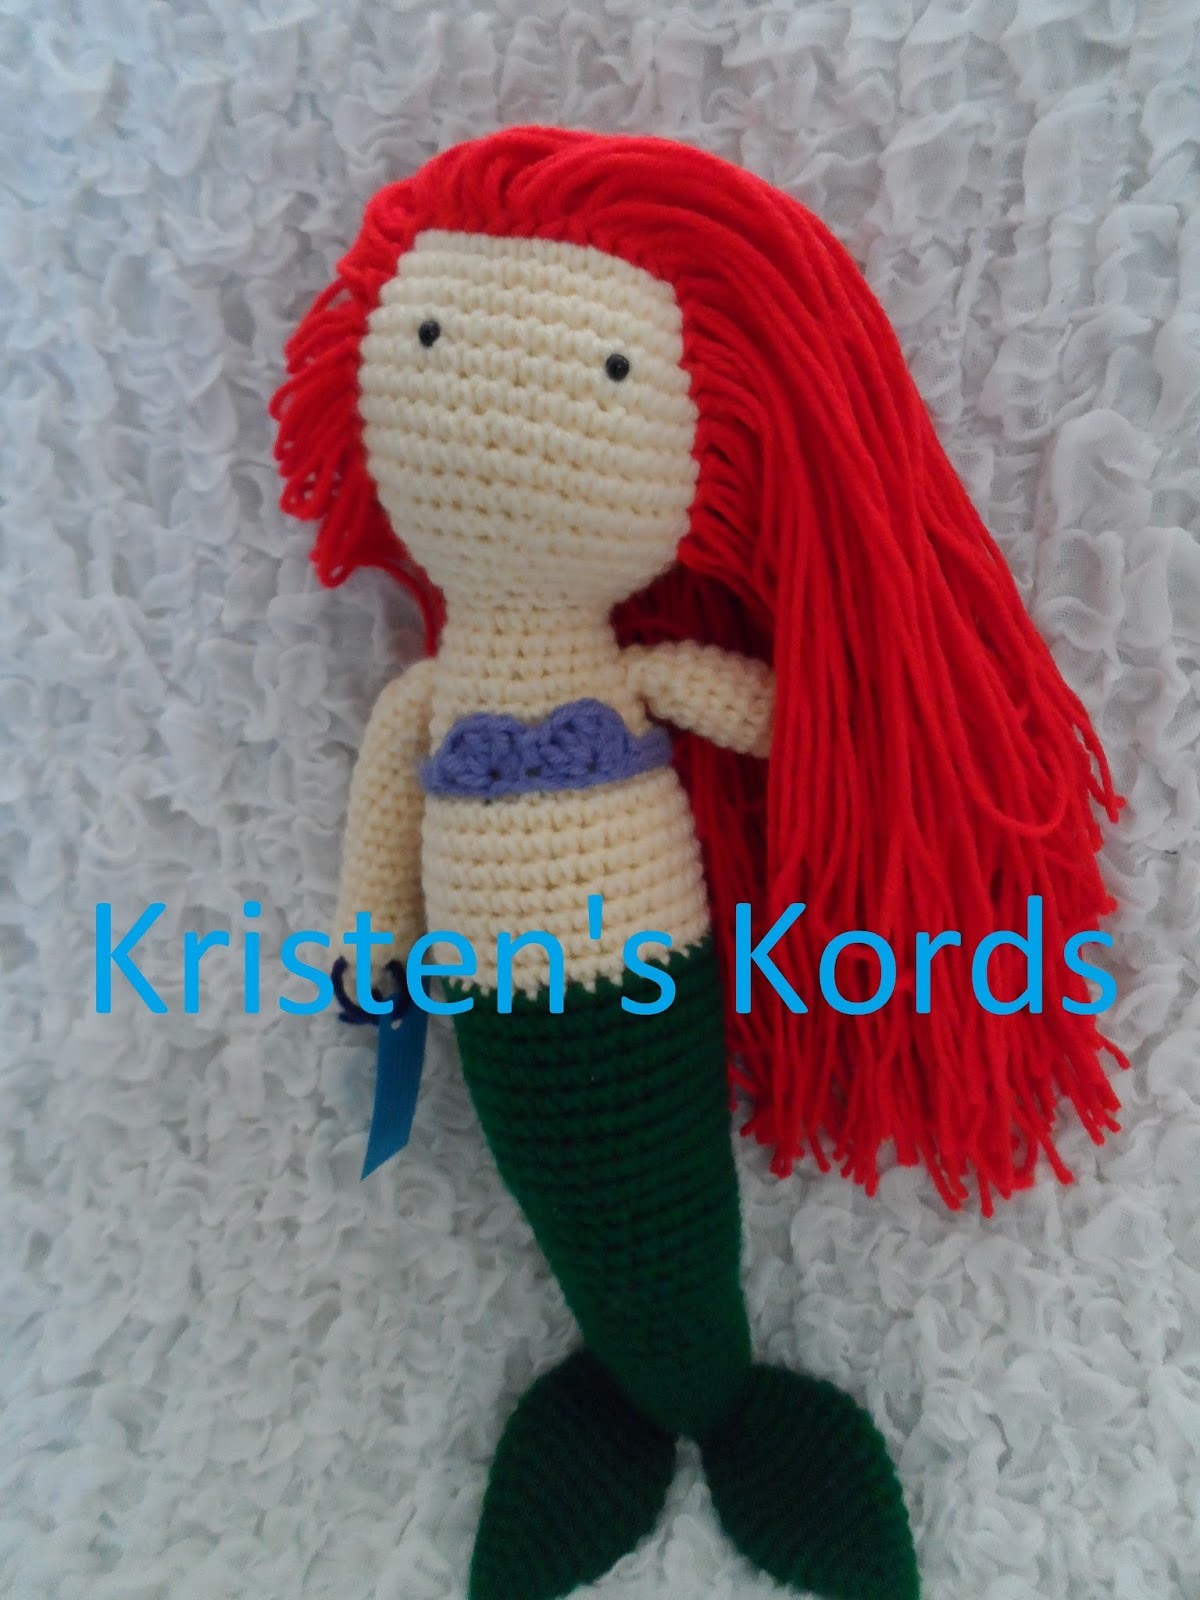 Crochet Patterns Mermaid : Kristens Crochet: Crochet Mermaid Pattern